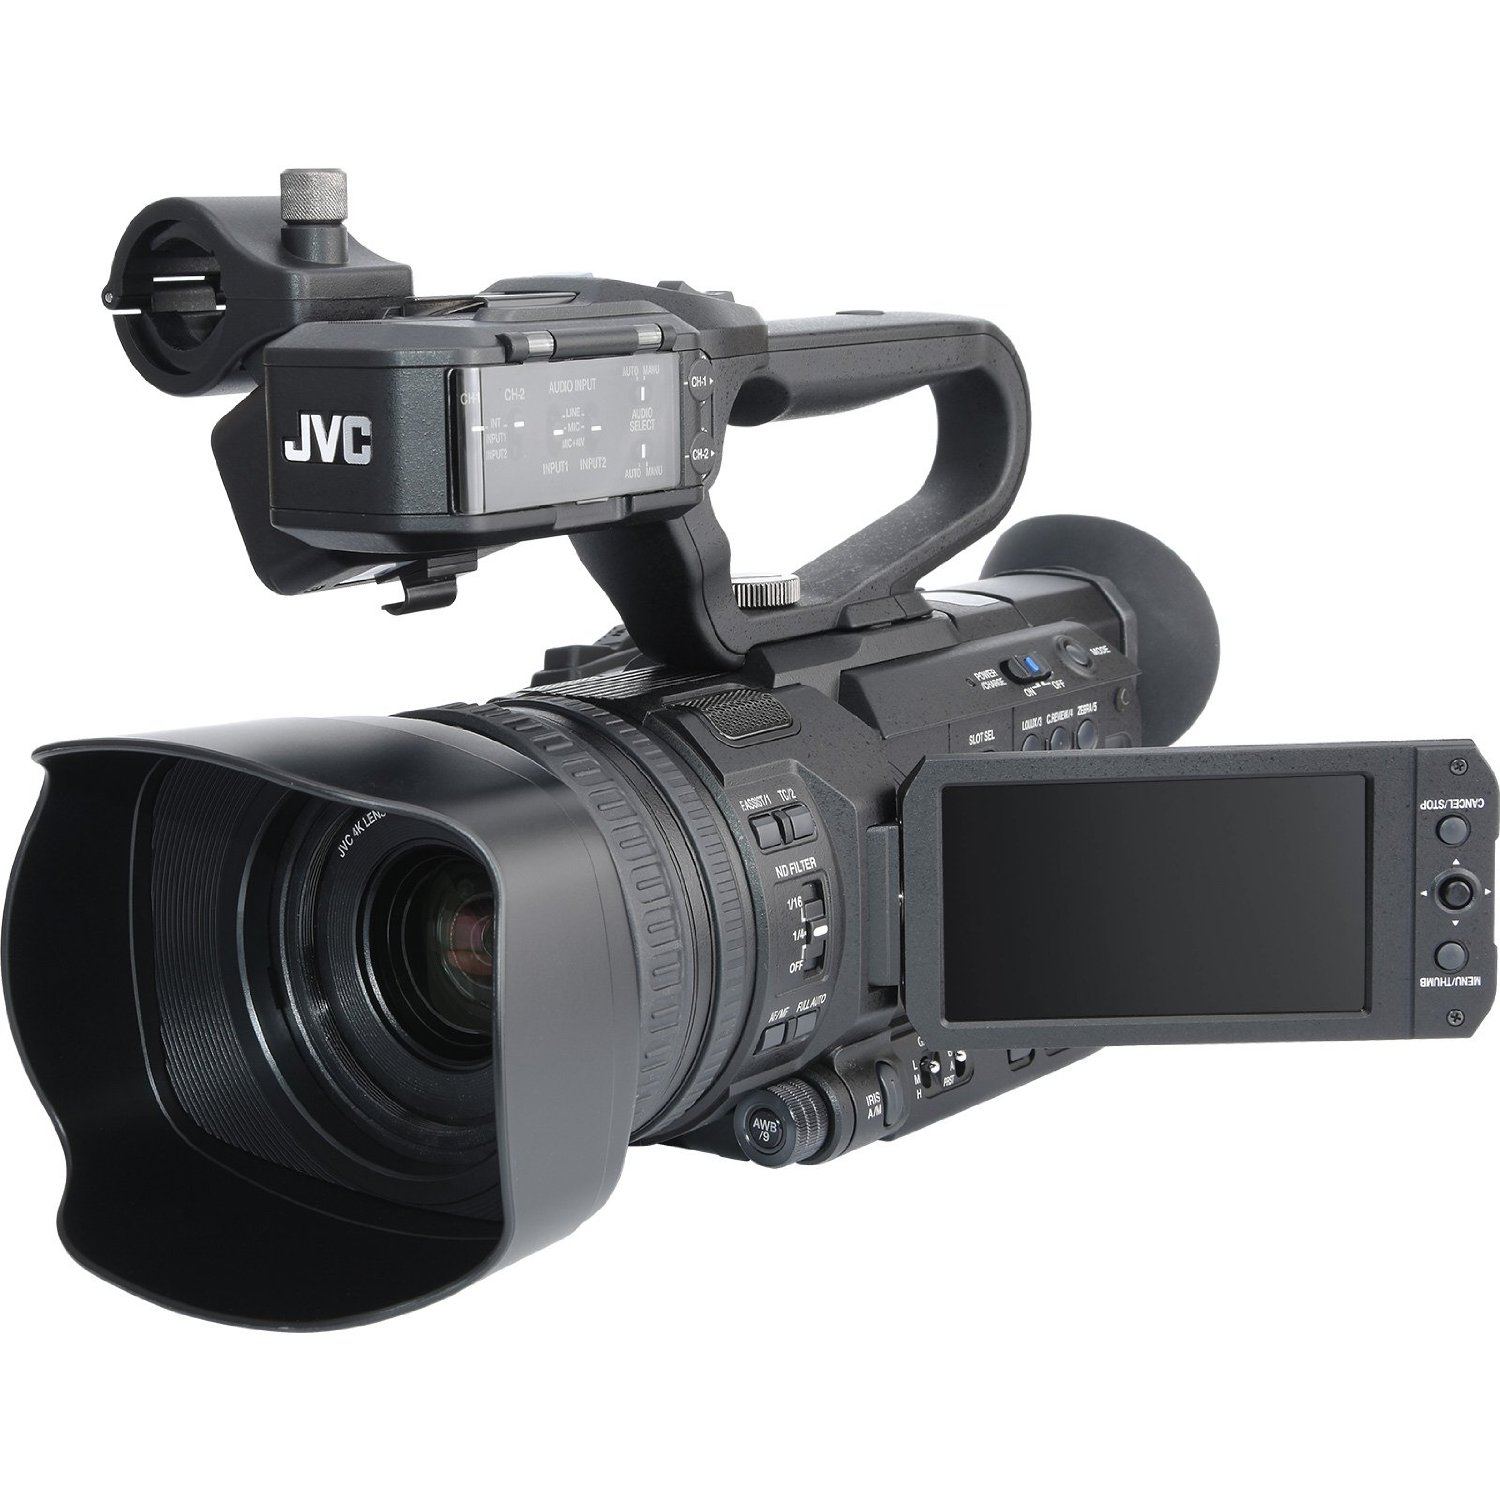 JVC Ultra 4K HD 4KCAM Professional Camcorder & Top Handle Audio Unit with XLR Microphone